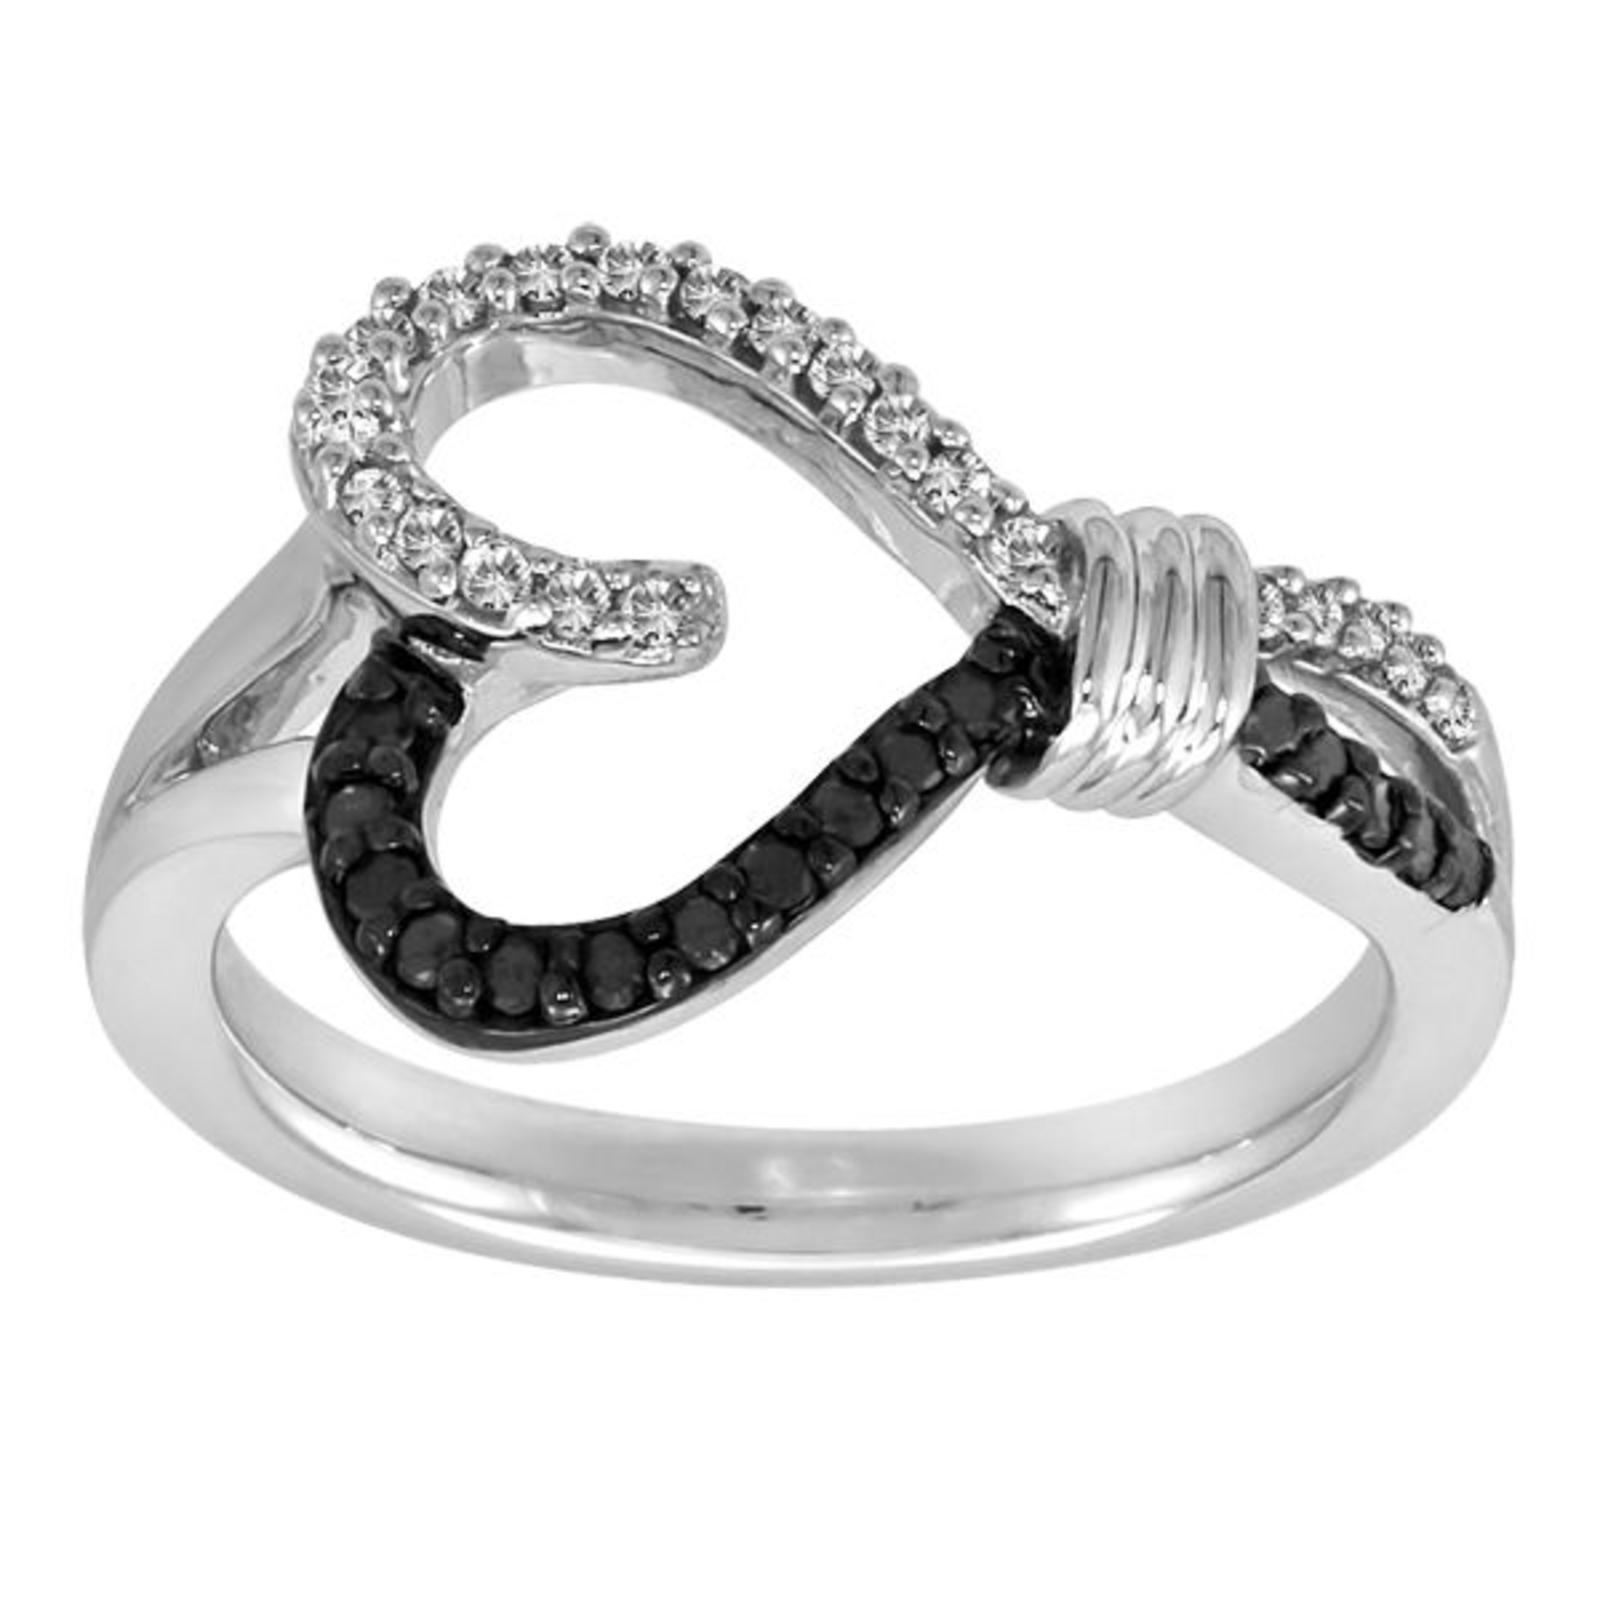 Knots of Love 1/4 Cttw. Black & White Diamond Sterling Silver Heart Ring - Size 7 Only